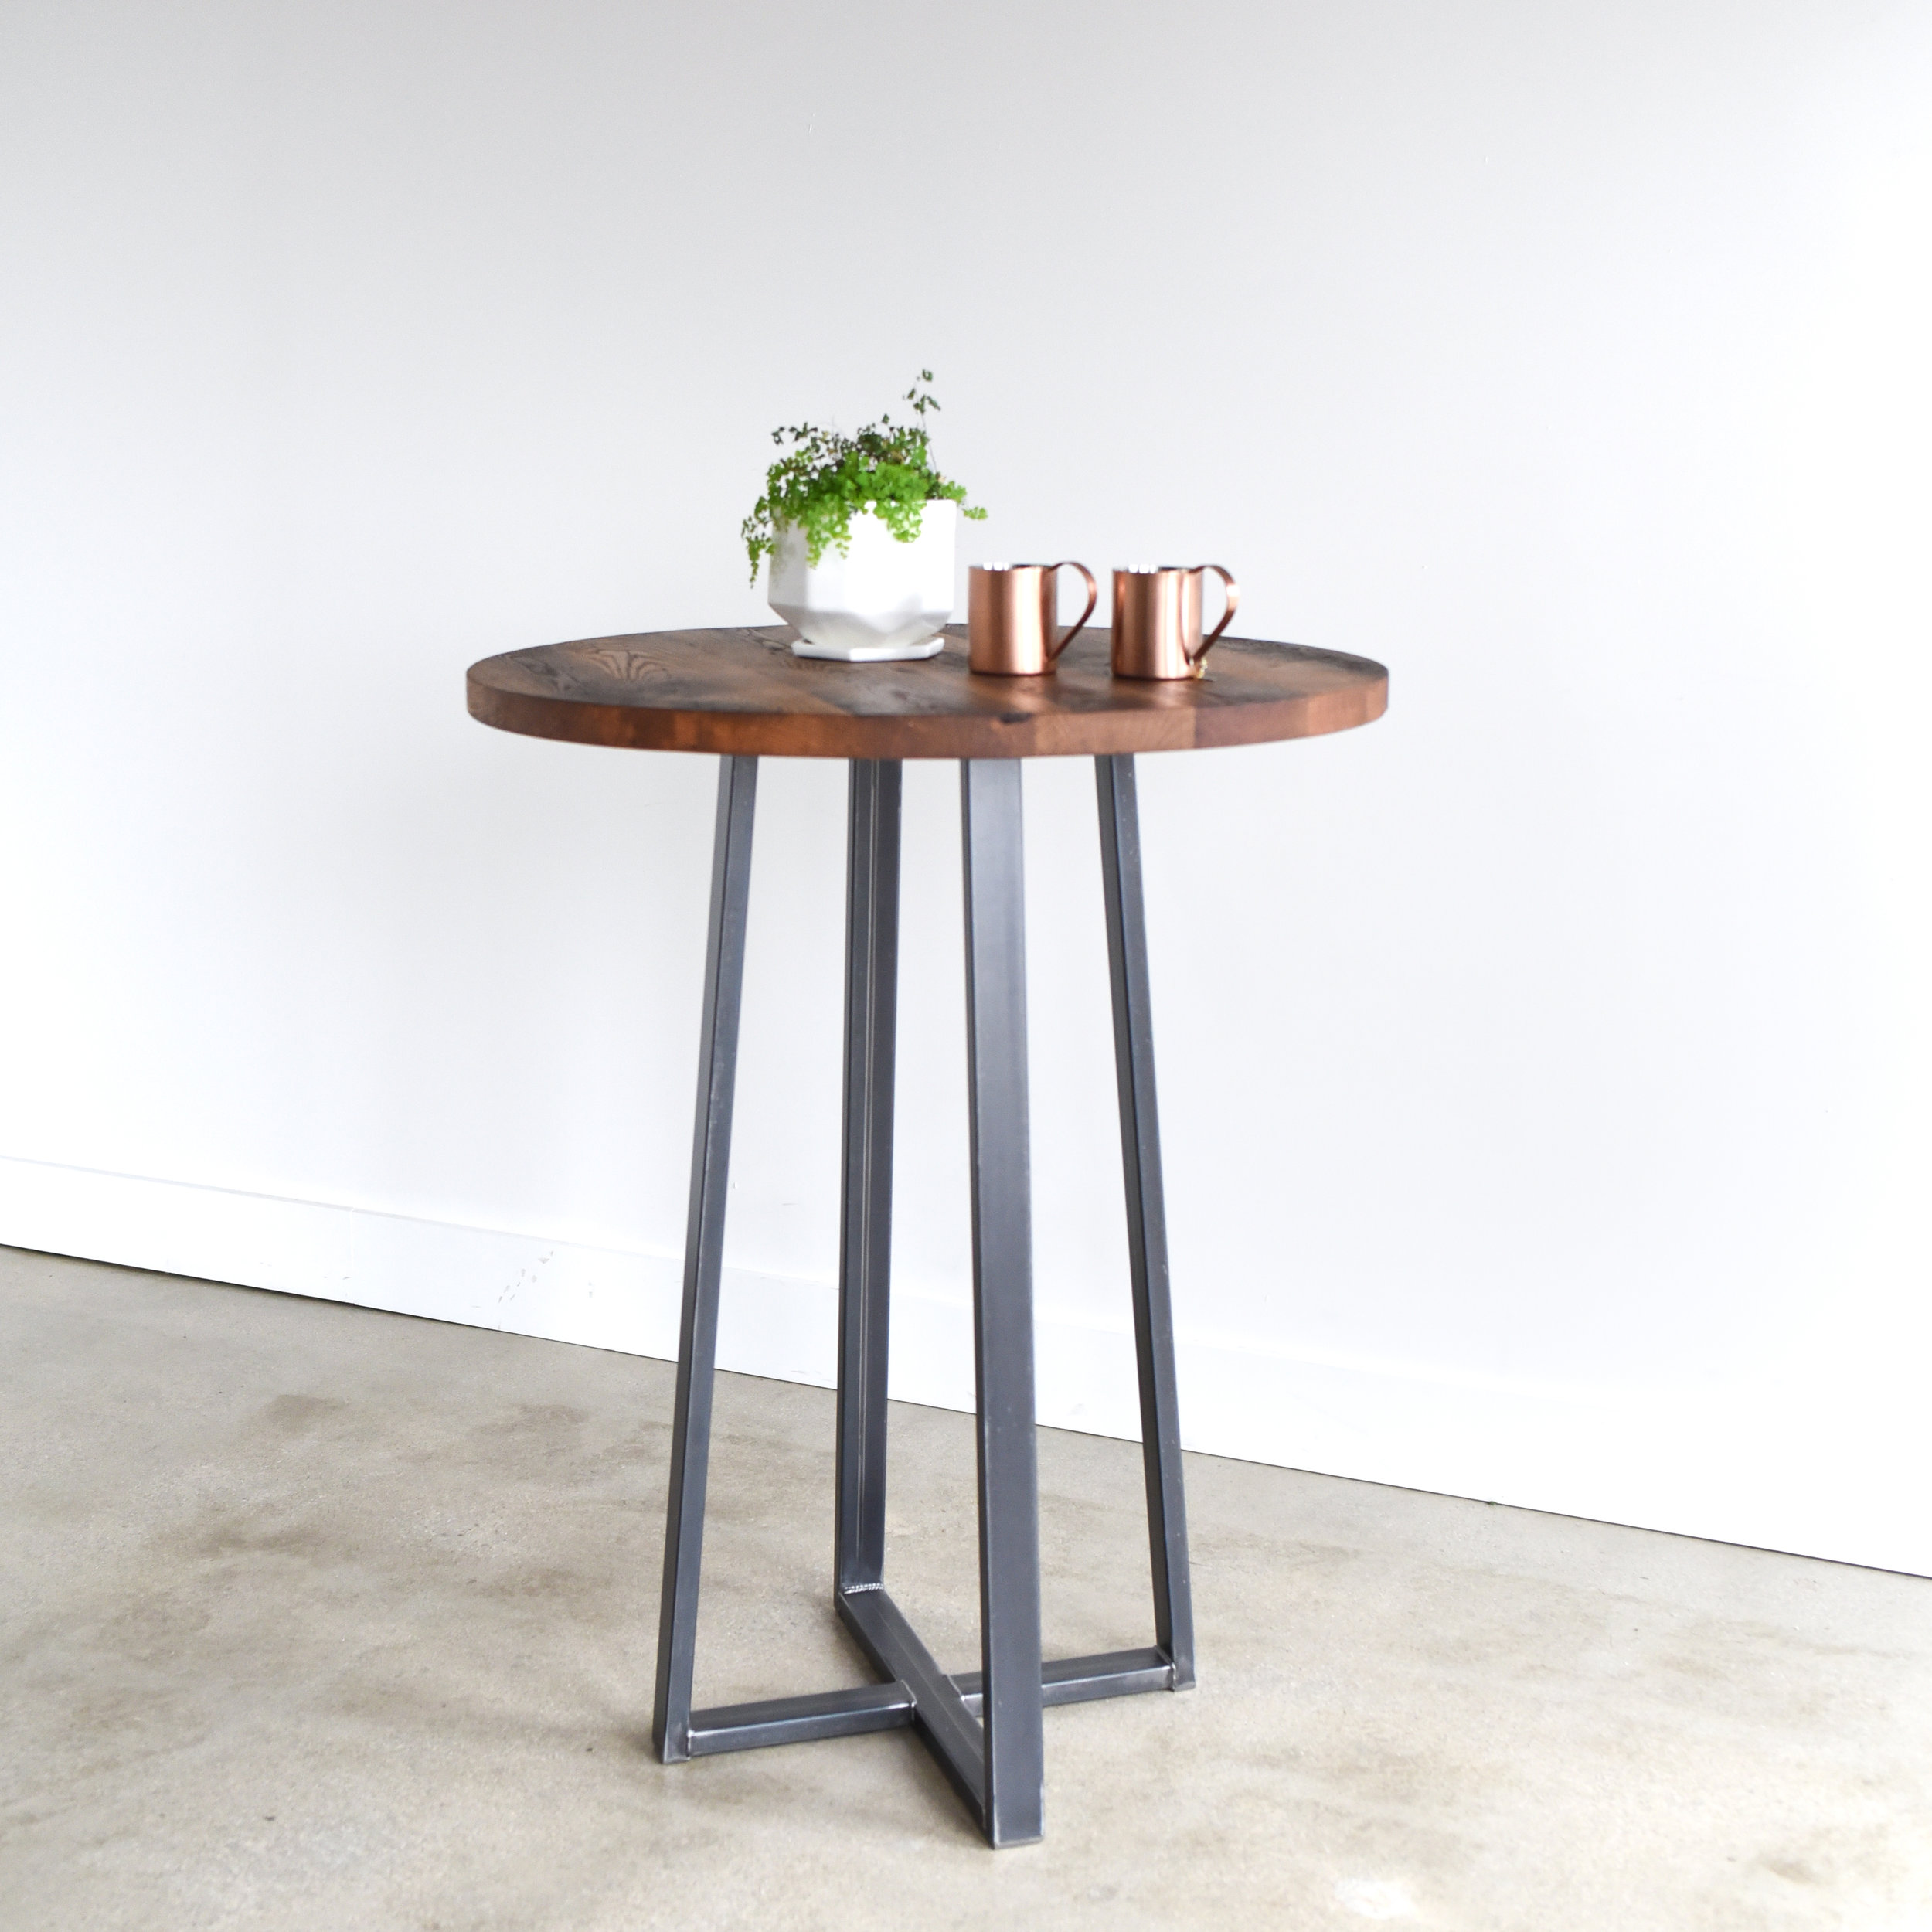 Round Industrial Reclaimed Wood Pub Table 42 Bar Height What We Make